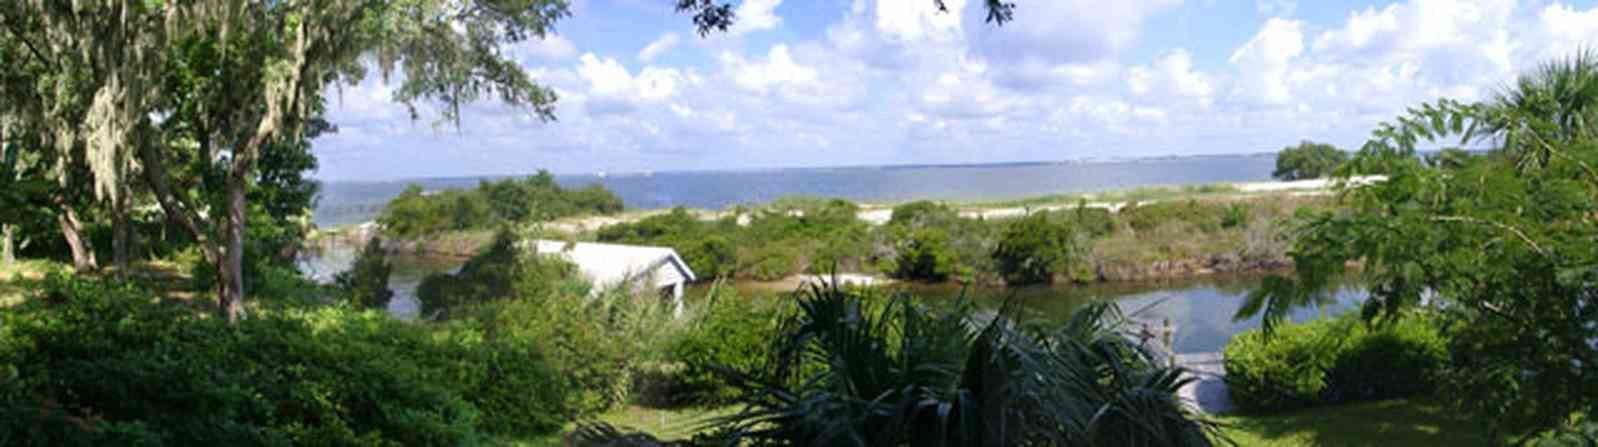 Gulf-Breeze:-Navy-Cove-House_04.jpg:  dead mans island, gulf coast, gulf breeze, gulf of mexico, boat house, spanish moss, sand bar, canal, mimosa tree